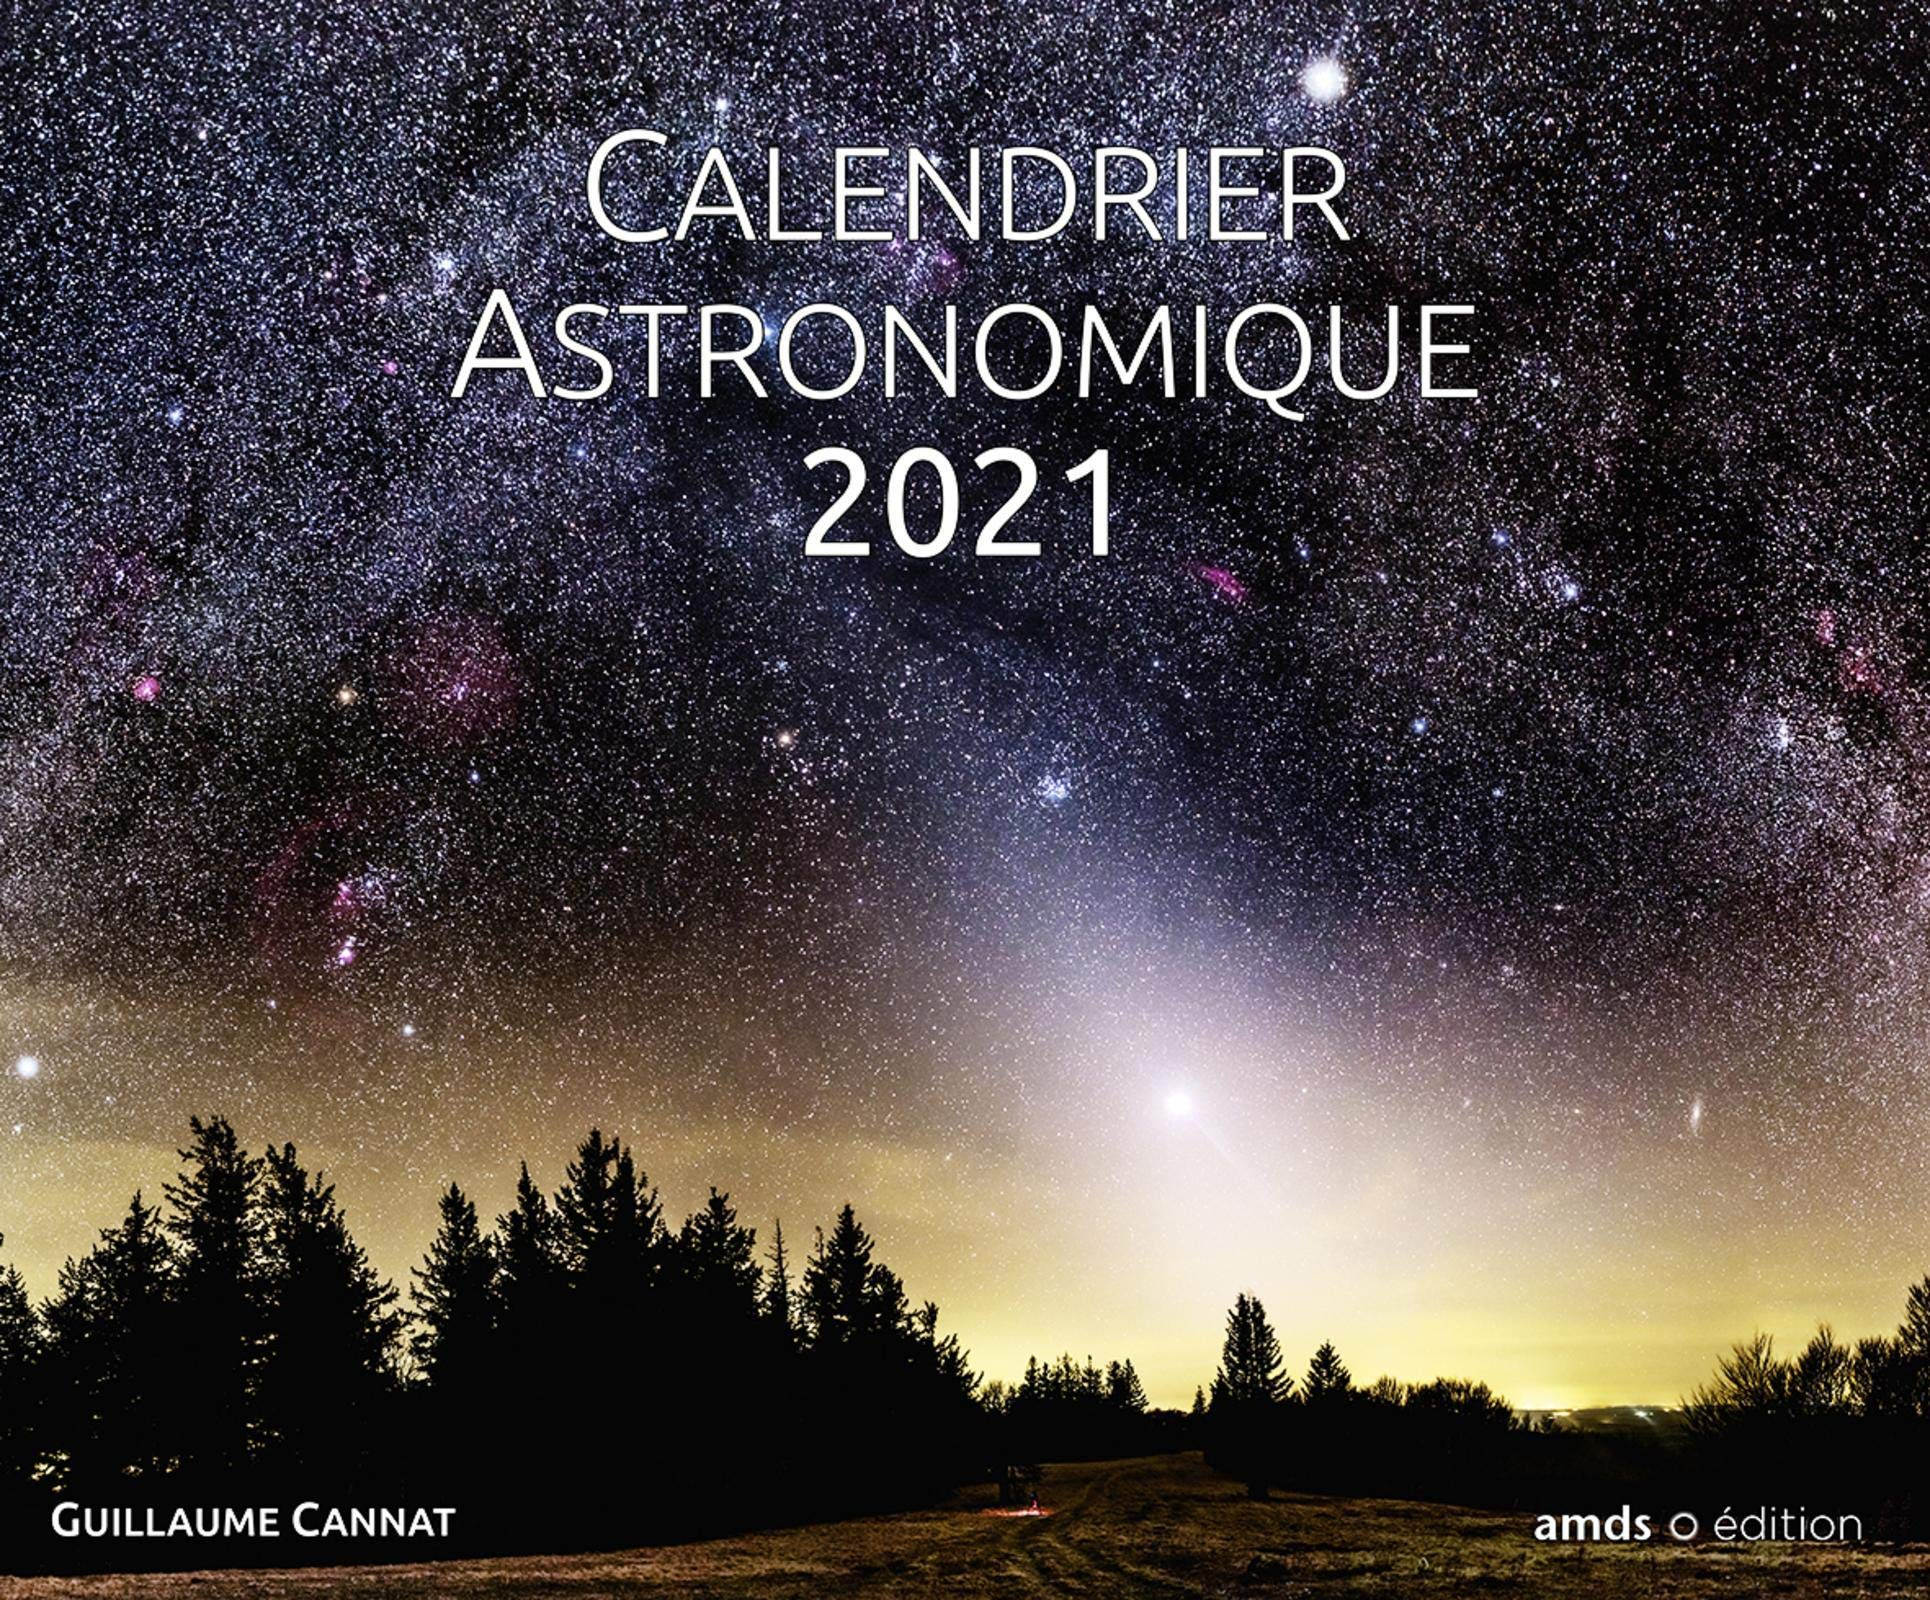 Calendrier Trial 2021 Calendrier astronomique 2021 (French Edition): Cannat, Guillaume